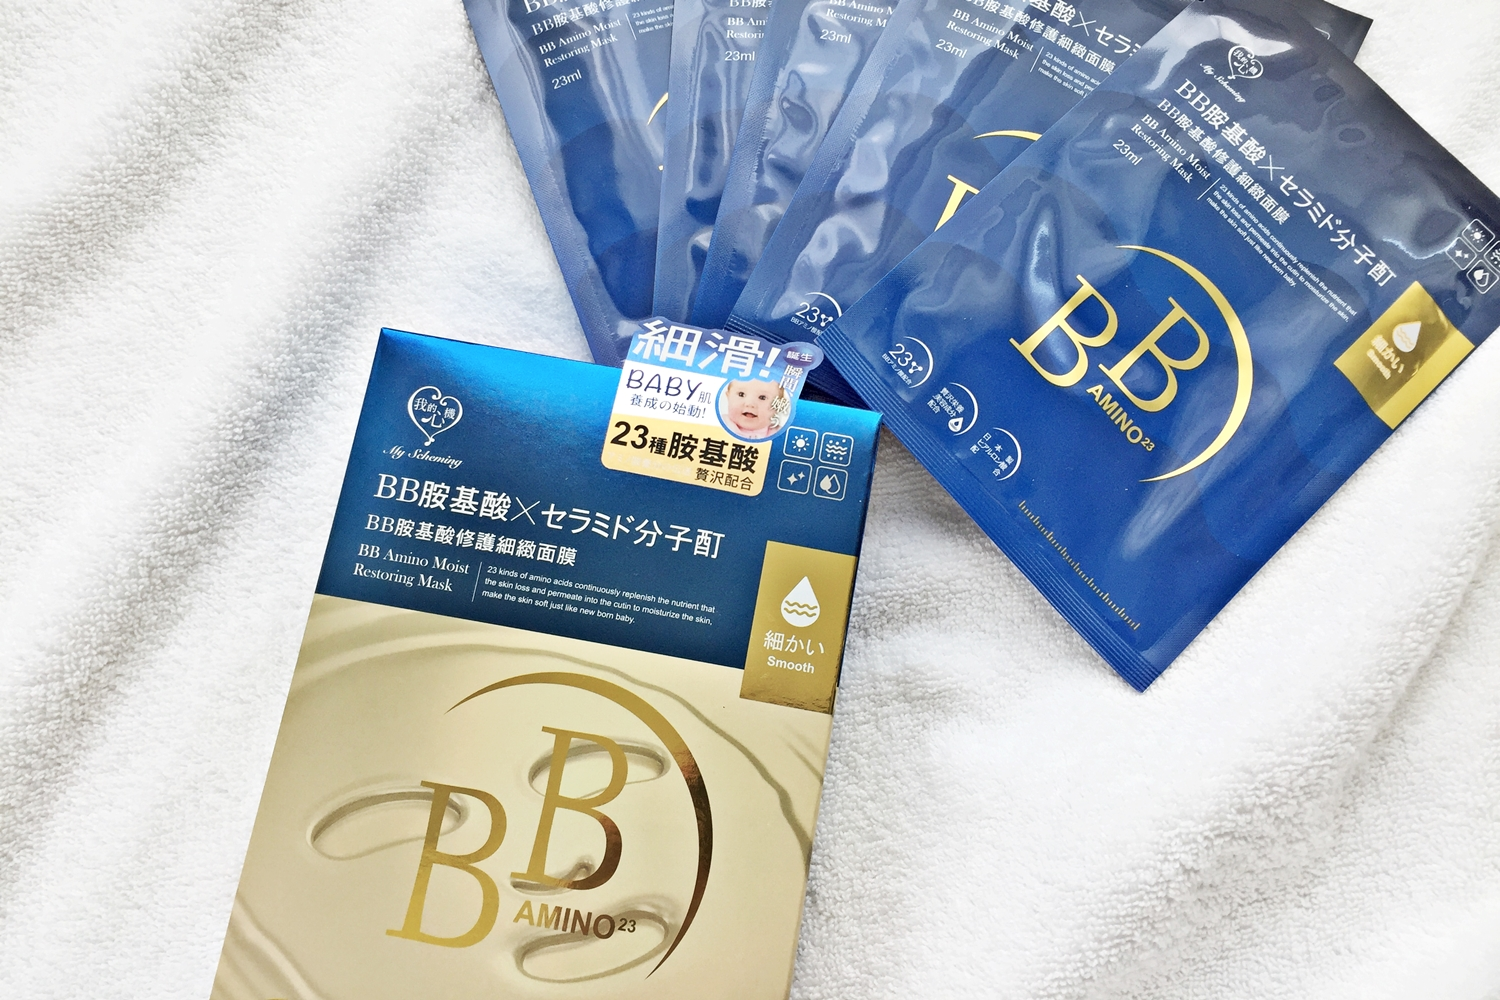 REVIEW   Softer Skin with My Scheming BB Amino Moist Mask #Restoring